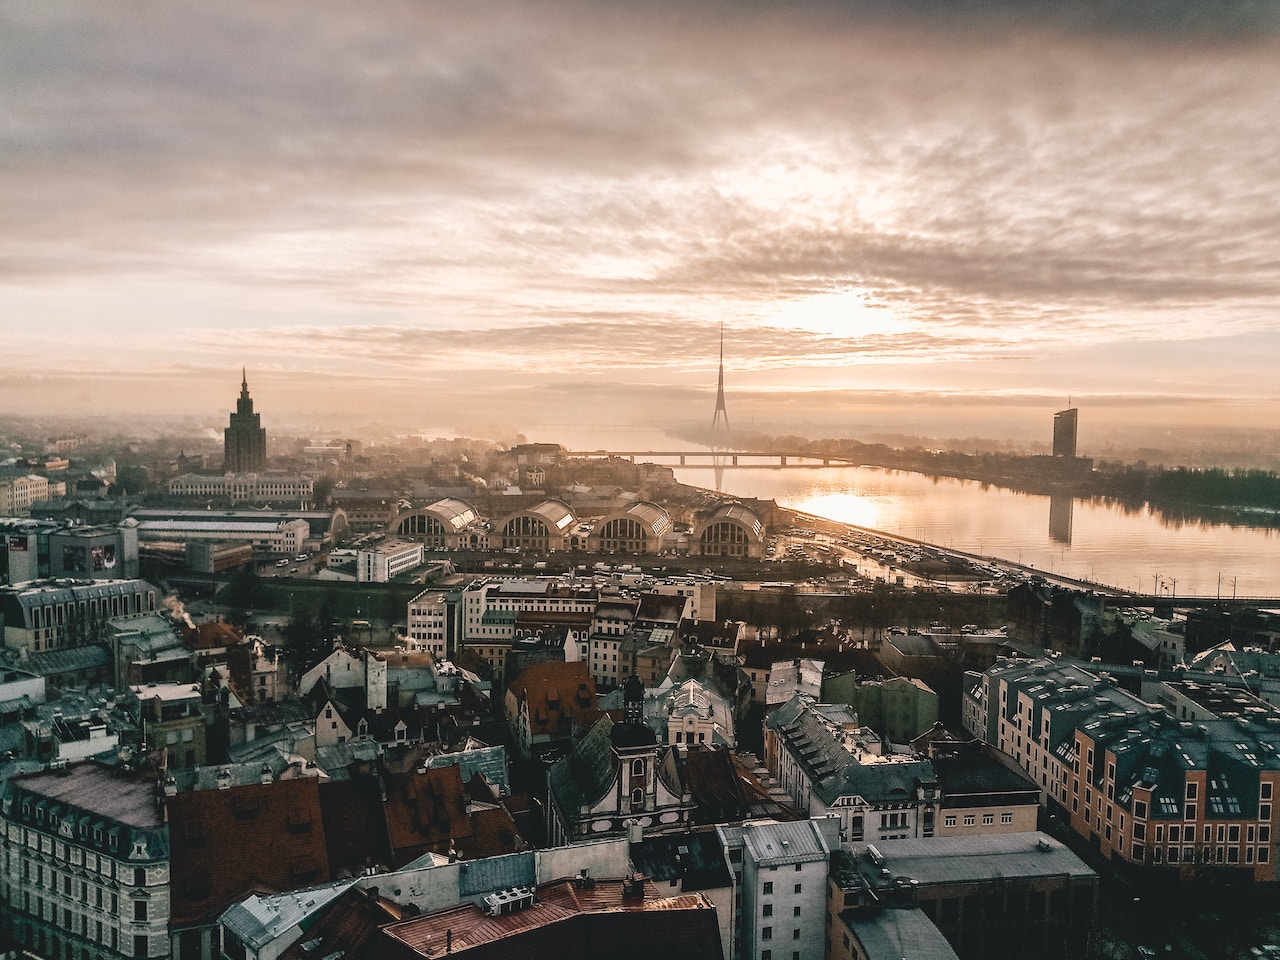 Photo: Riga, Latvia by Gilly, Unsplash